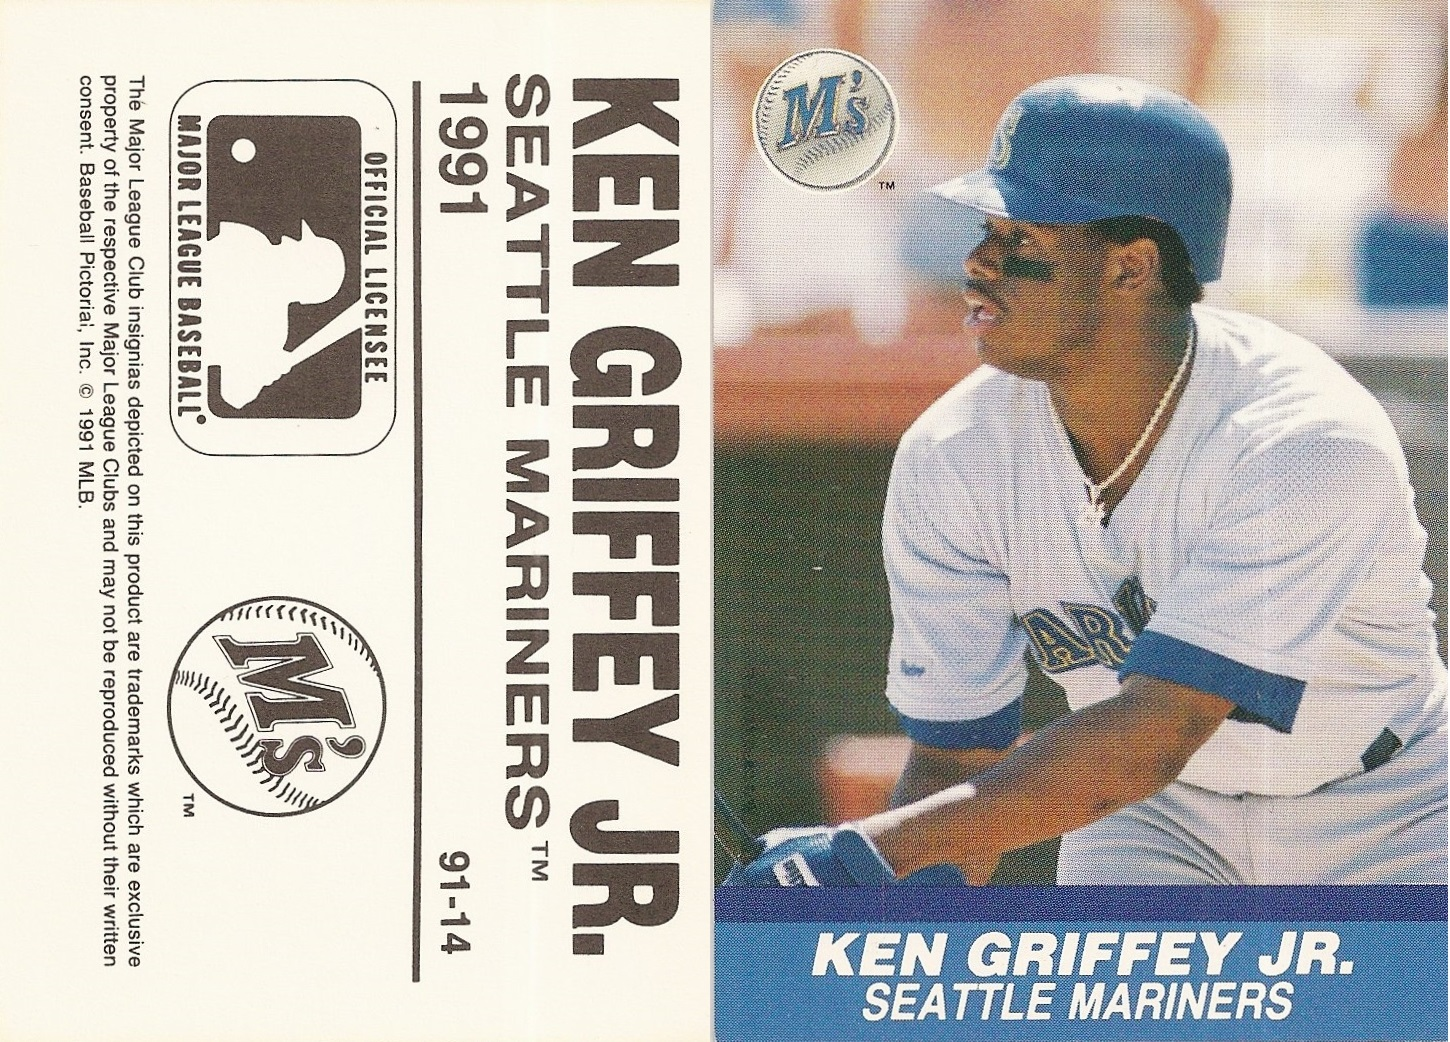 d8b937348f GRIFFEY JR,KEN, 1991, Broder Type - Playball U.S.A. #14, $3.00, SCAN9358 -  Copy (9)